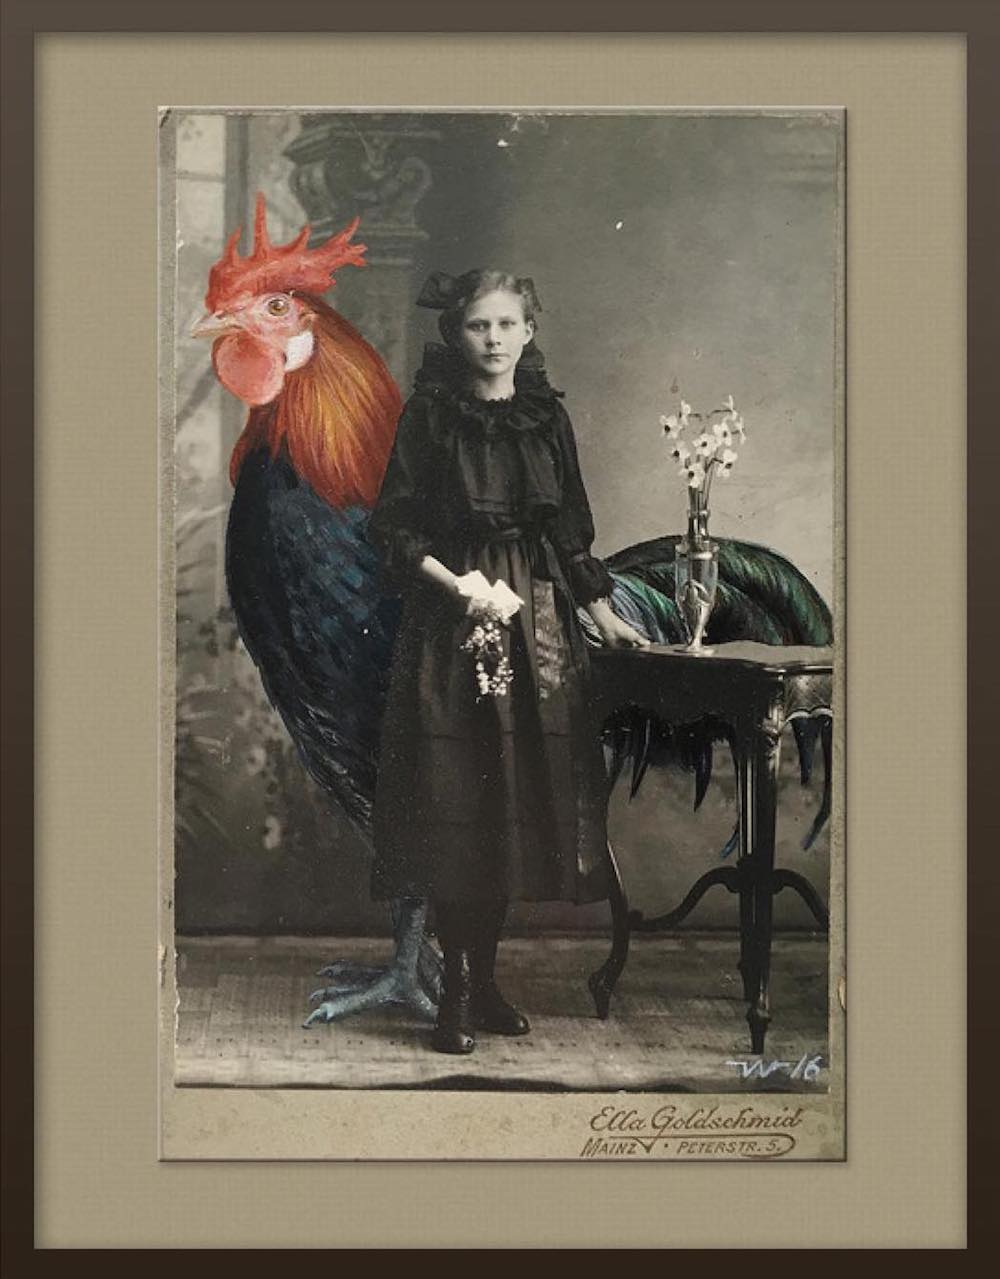 Oversized Oil Paintings of Animals in Vintage Photographs